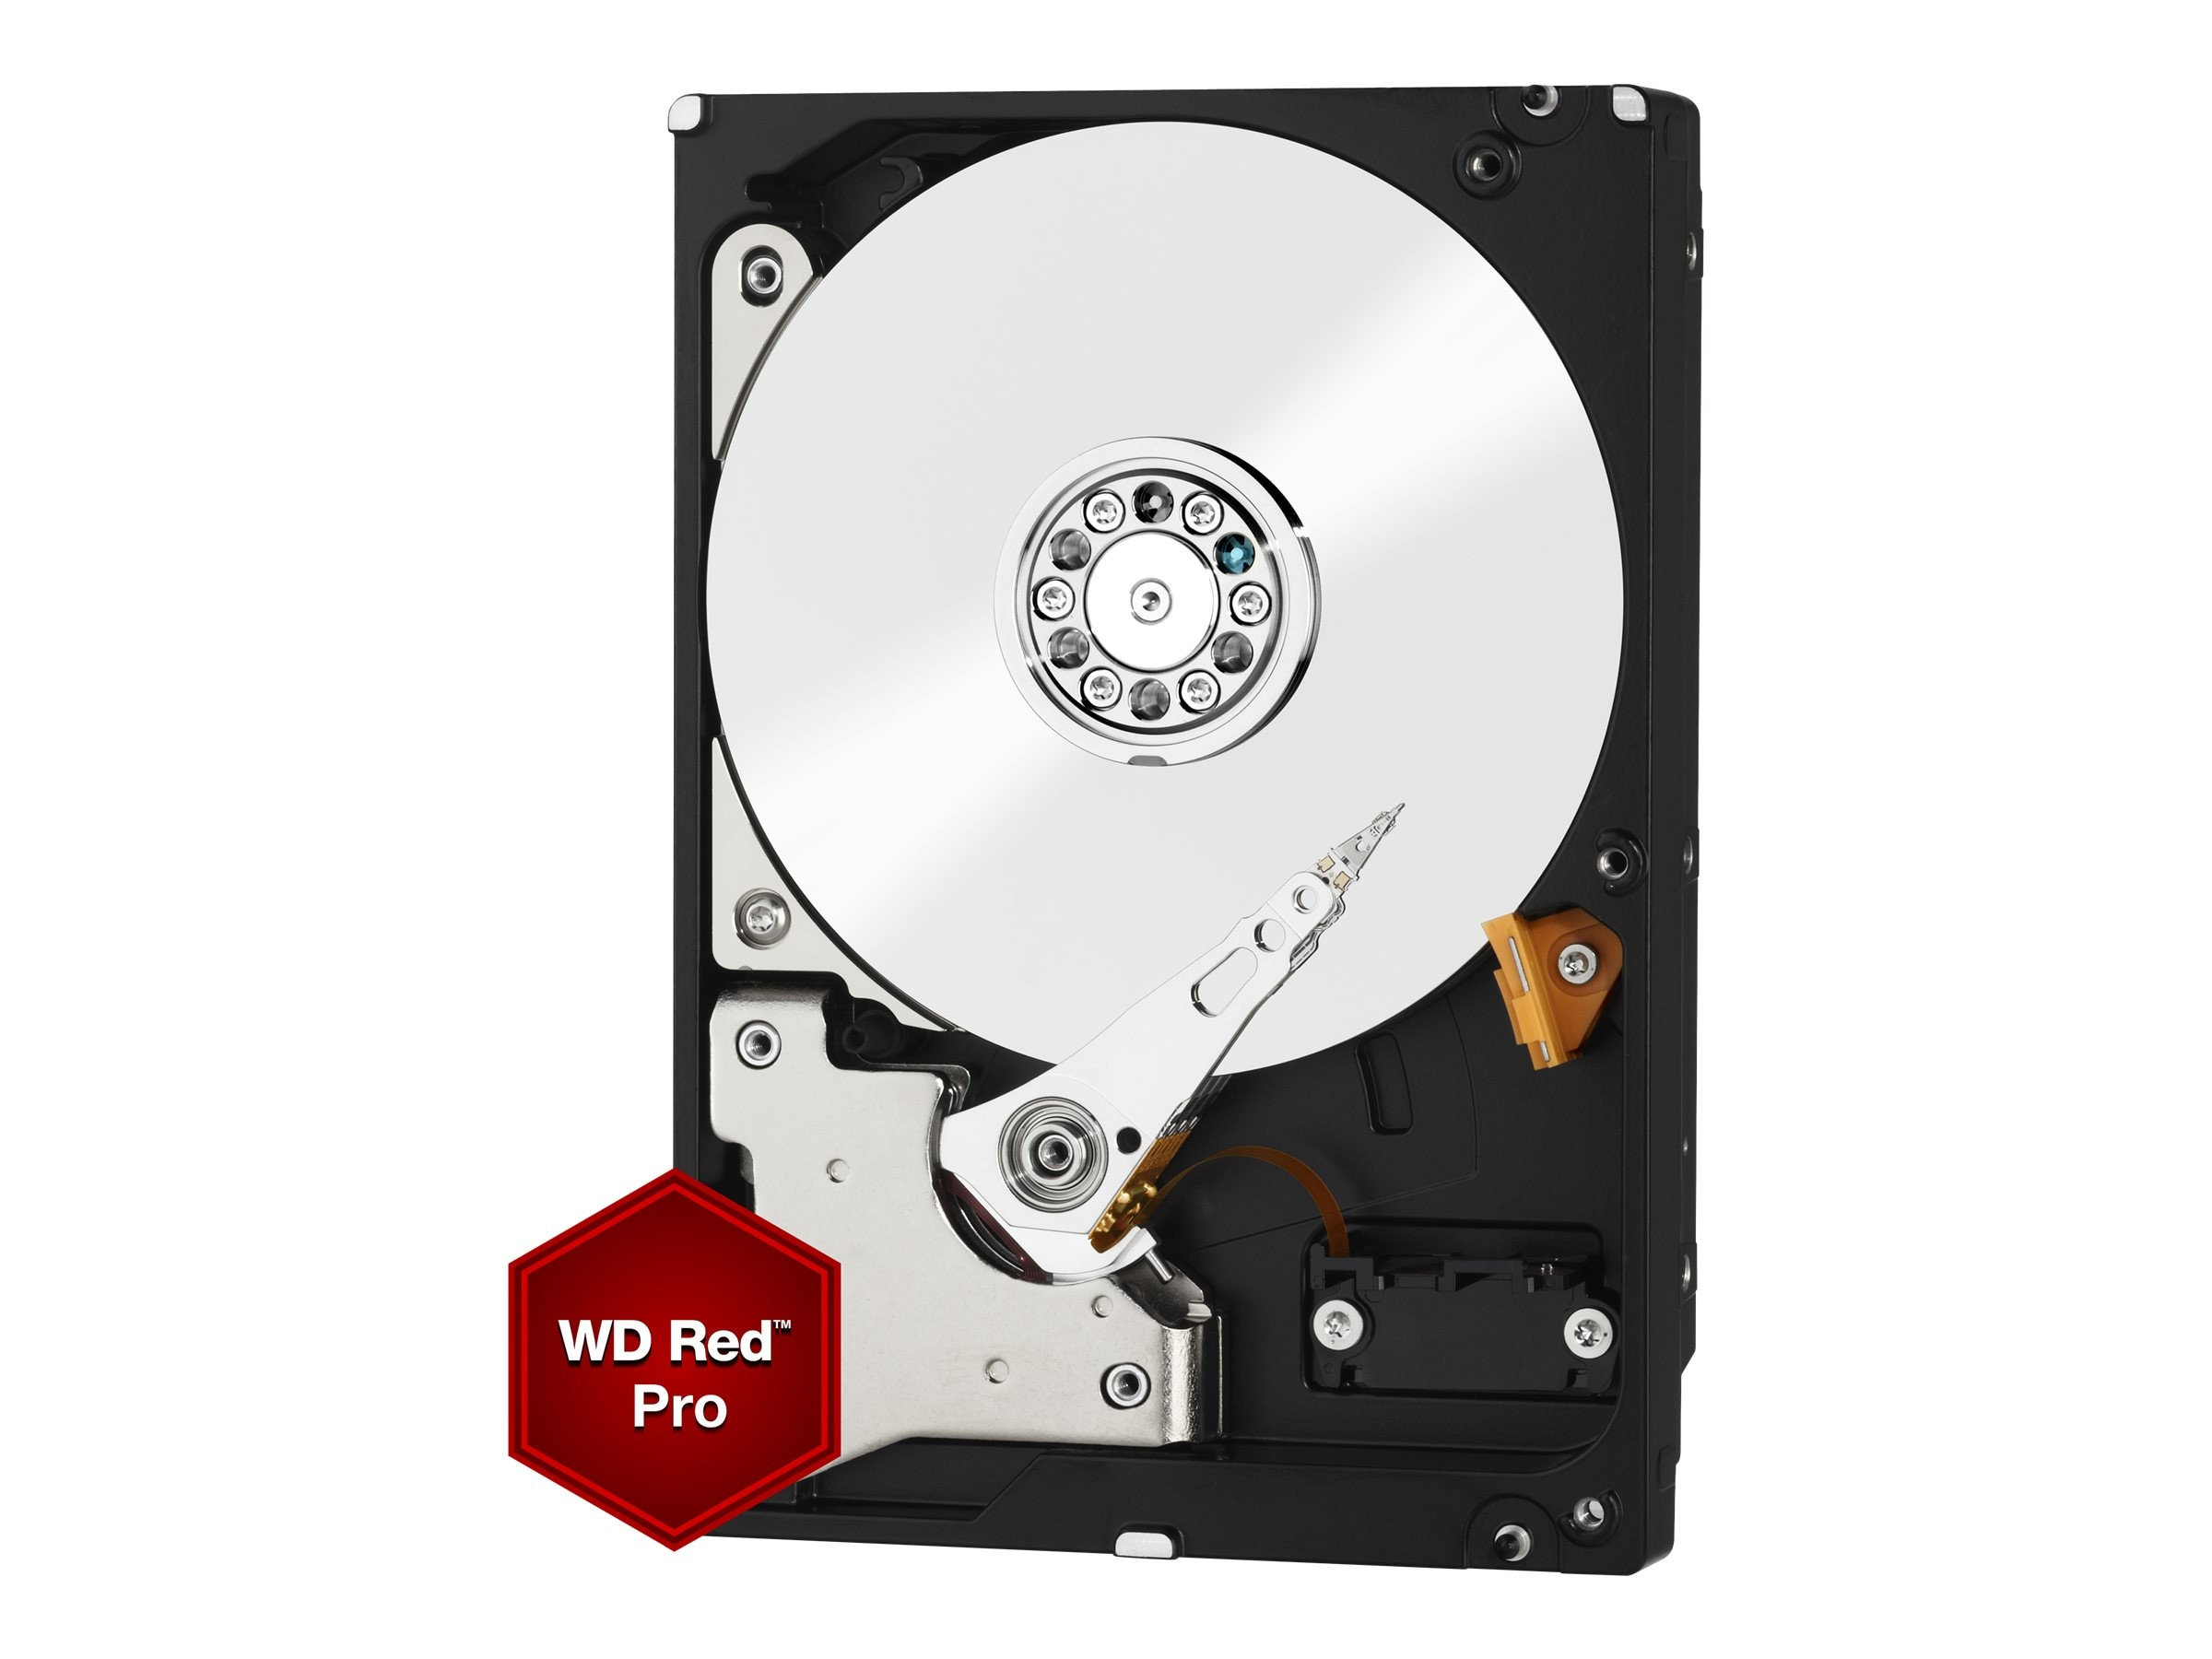 WD 4TB WD Red Pro SATA 6Gb s 3.5 Internal Hard Drive, WD4001FFSX, 17590289, Hard Drives - Internal